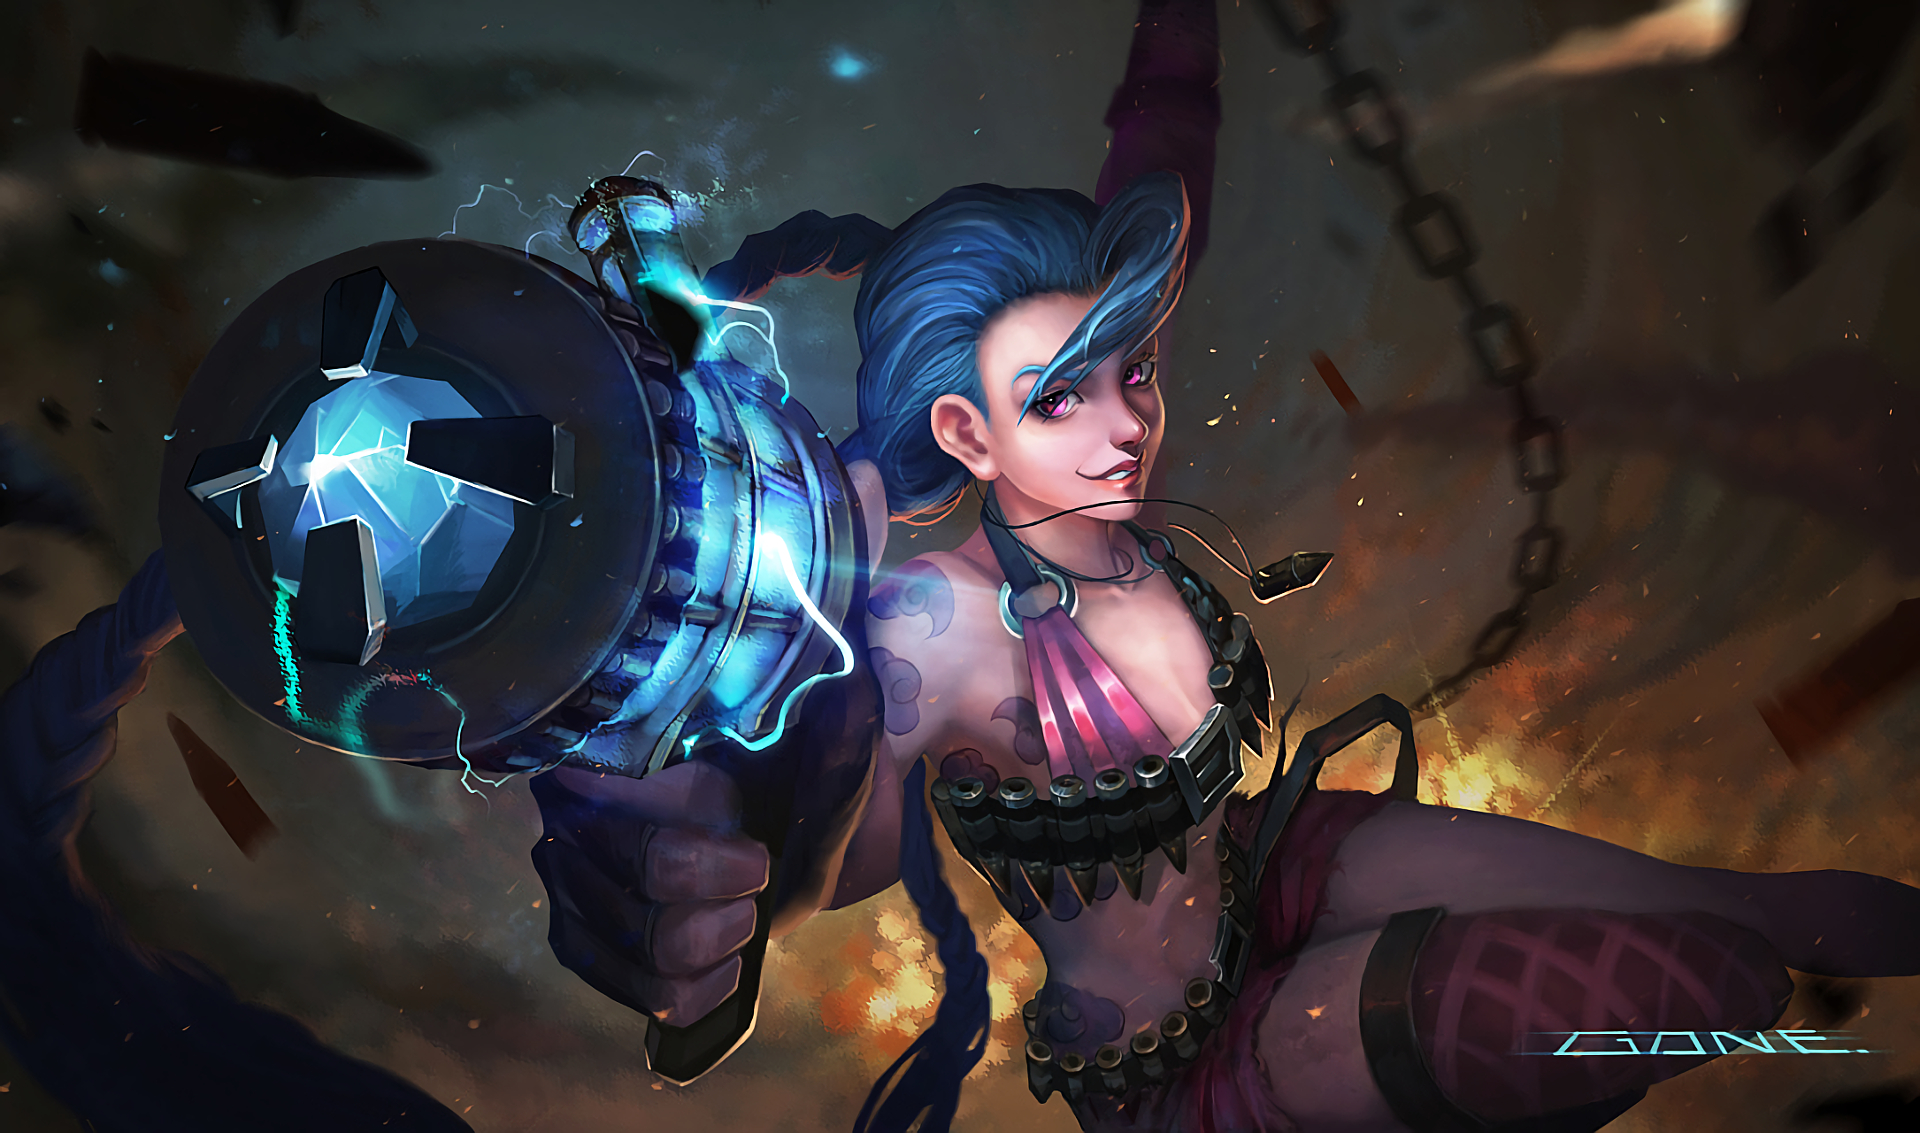 jinx - lolwallpapers